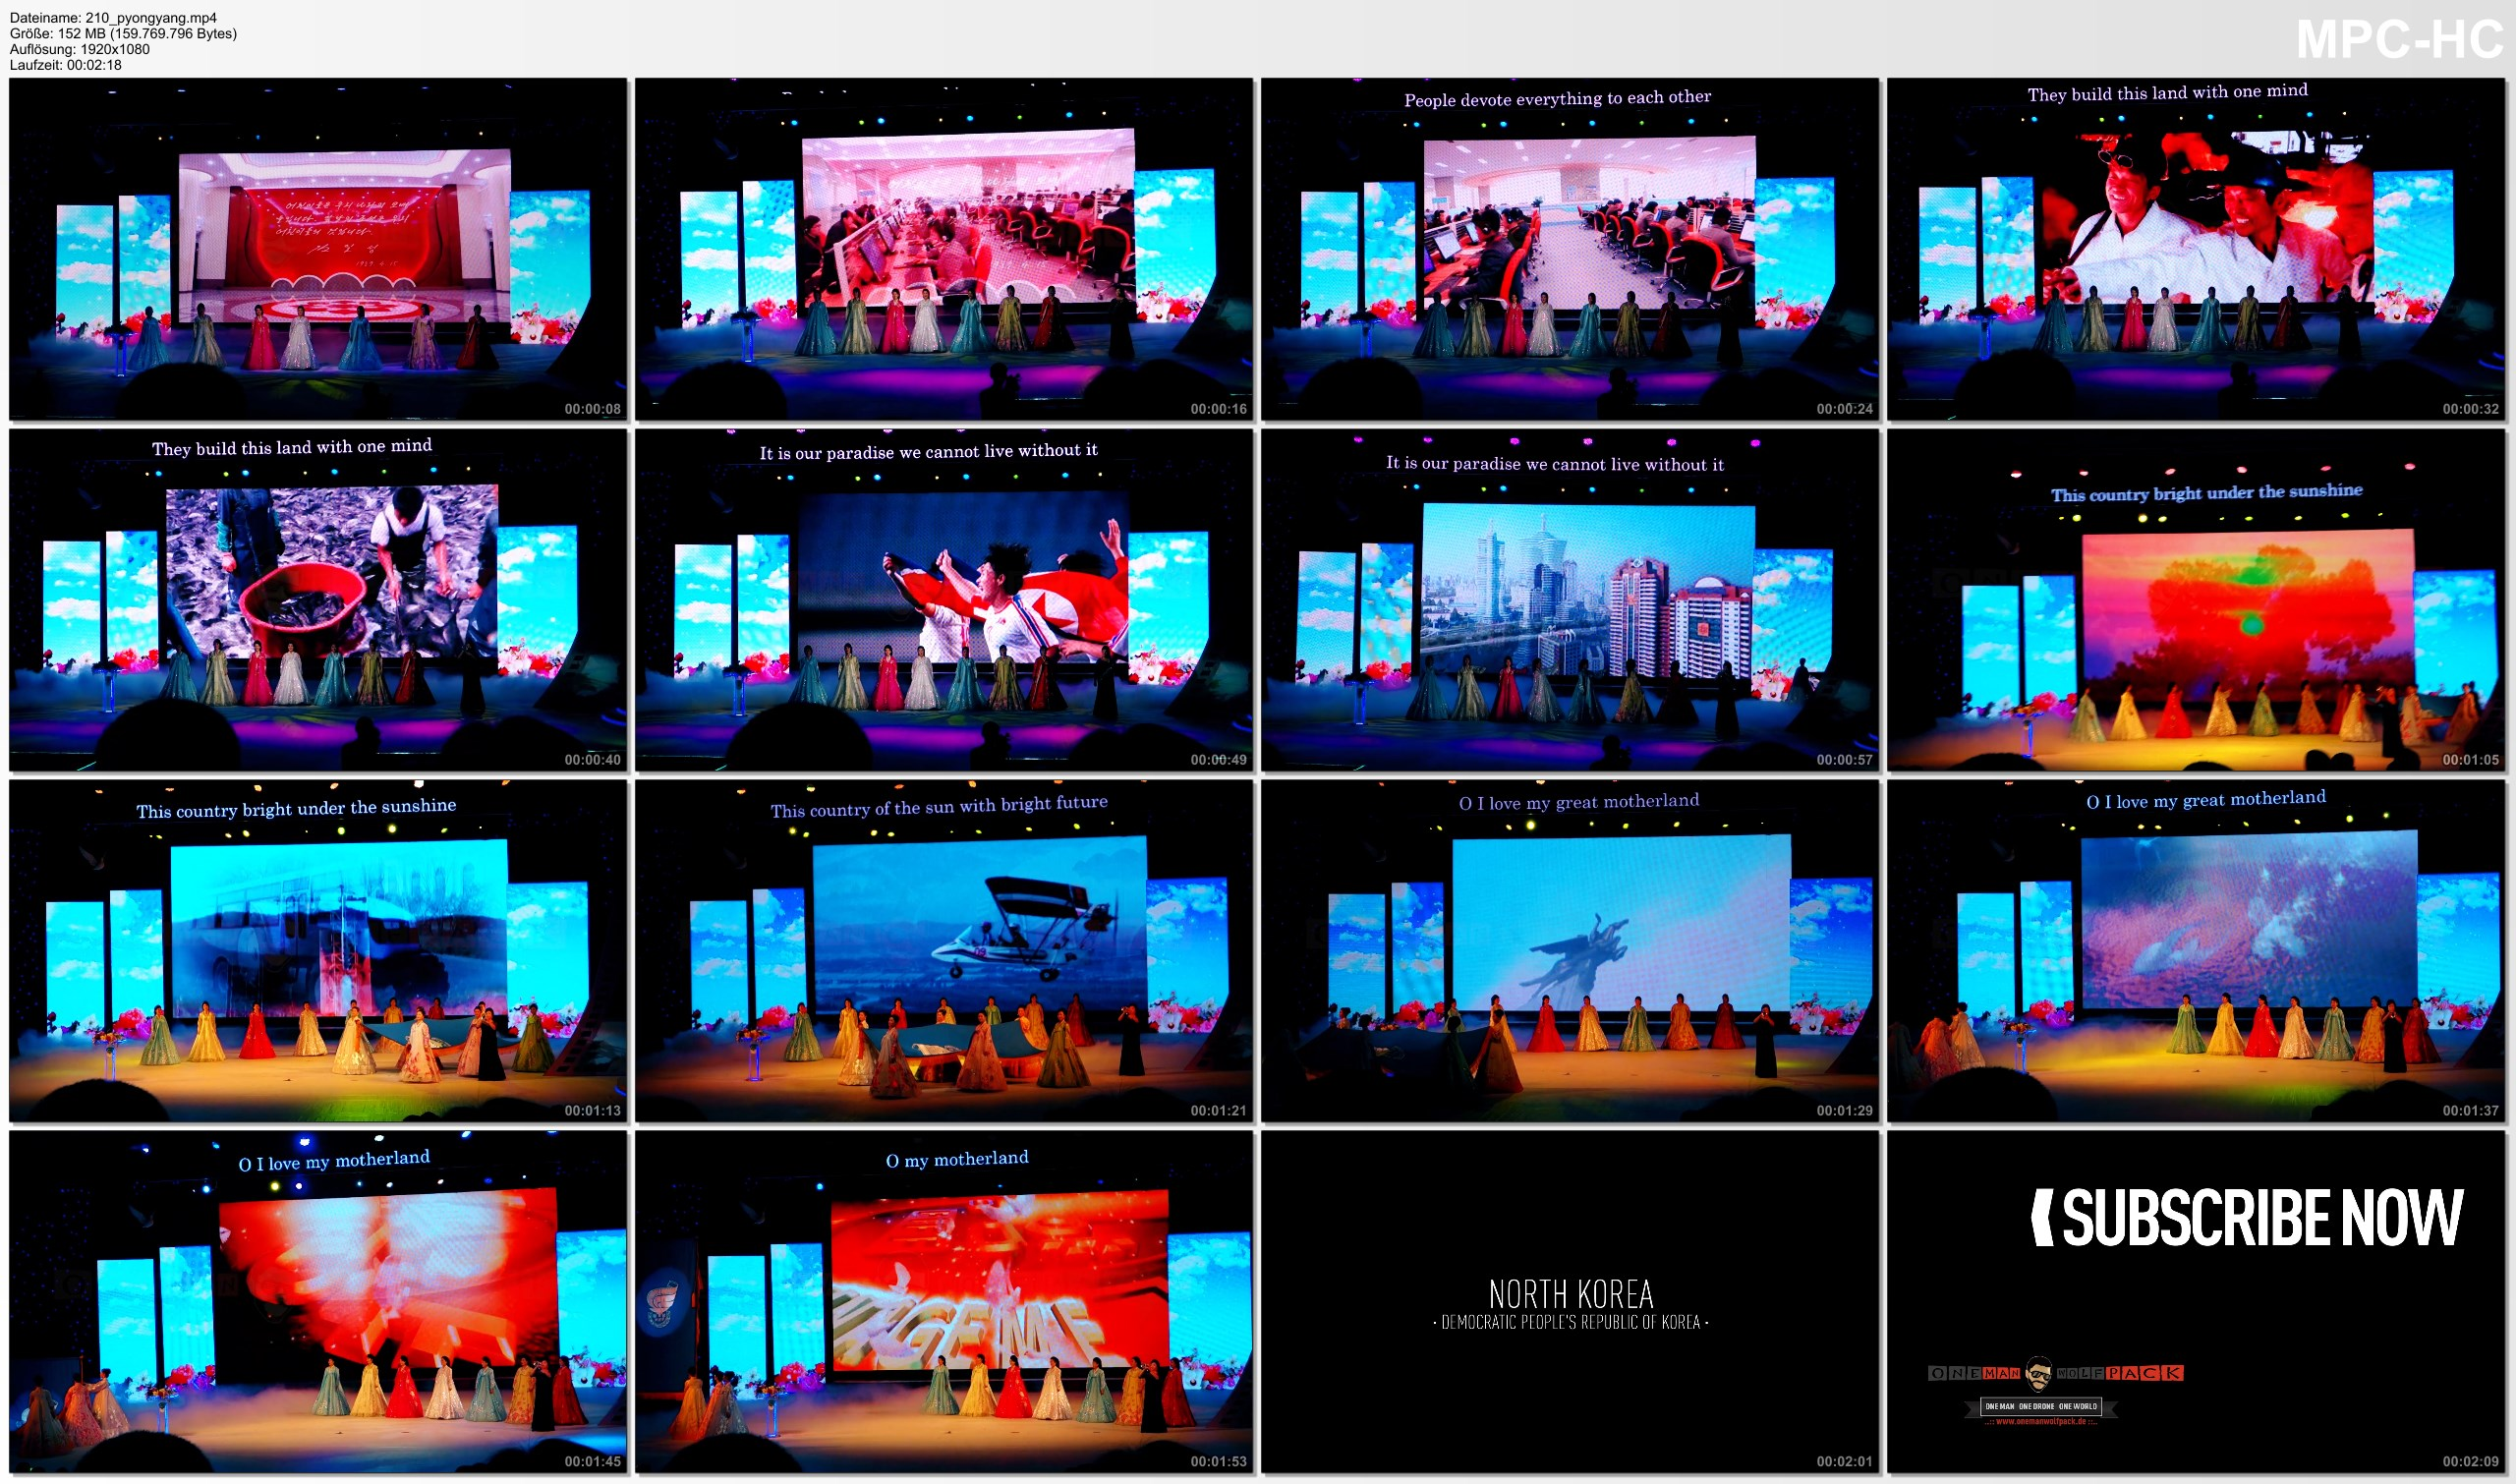 Pictures from Video 【1080p】Footage | Propaganda Video NORTH KOREA (DPRK) 2019 ..:: Performance @Pyongyang *TRAVEL VIDEO*